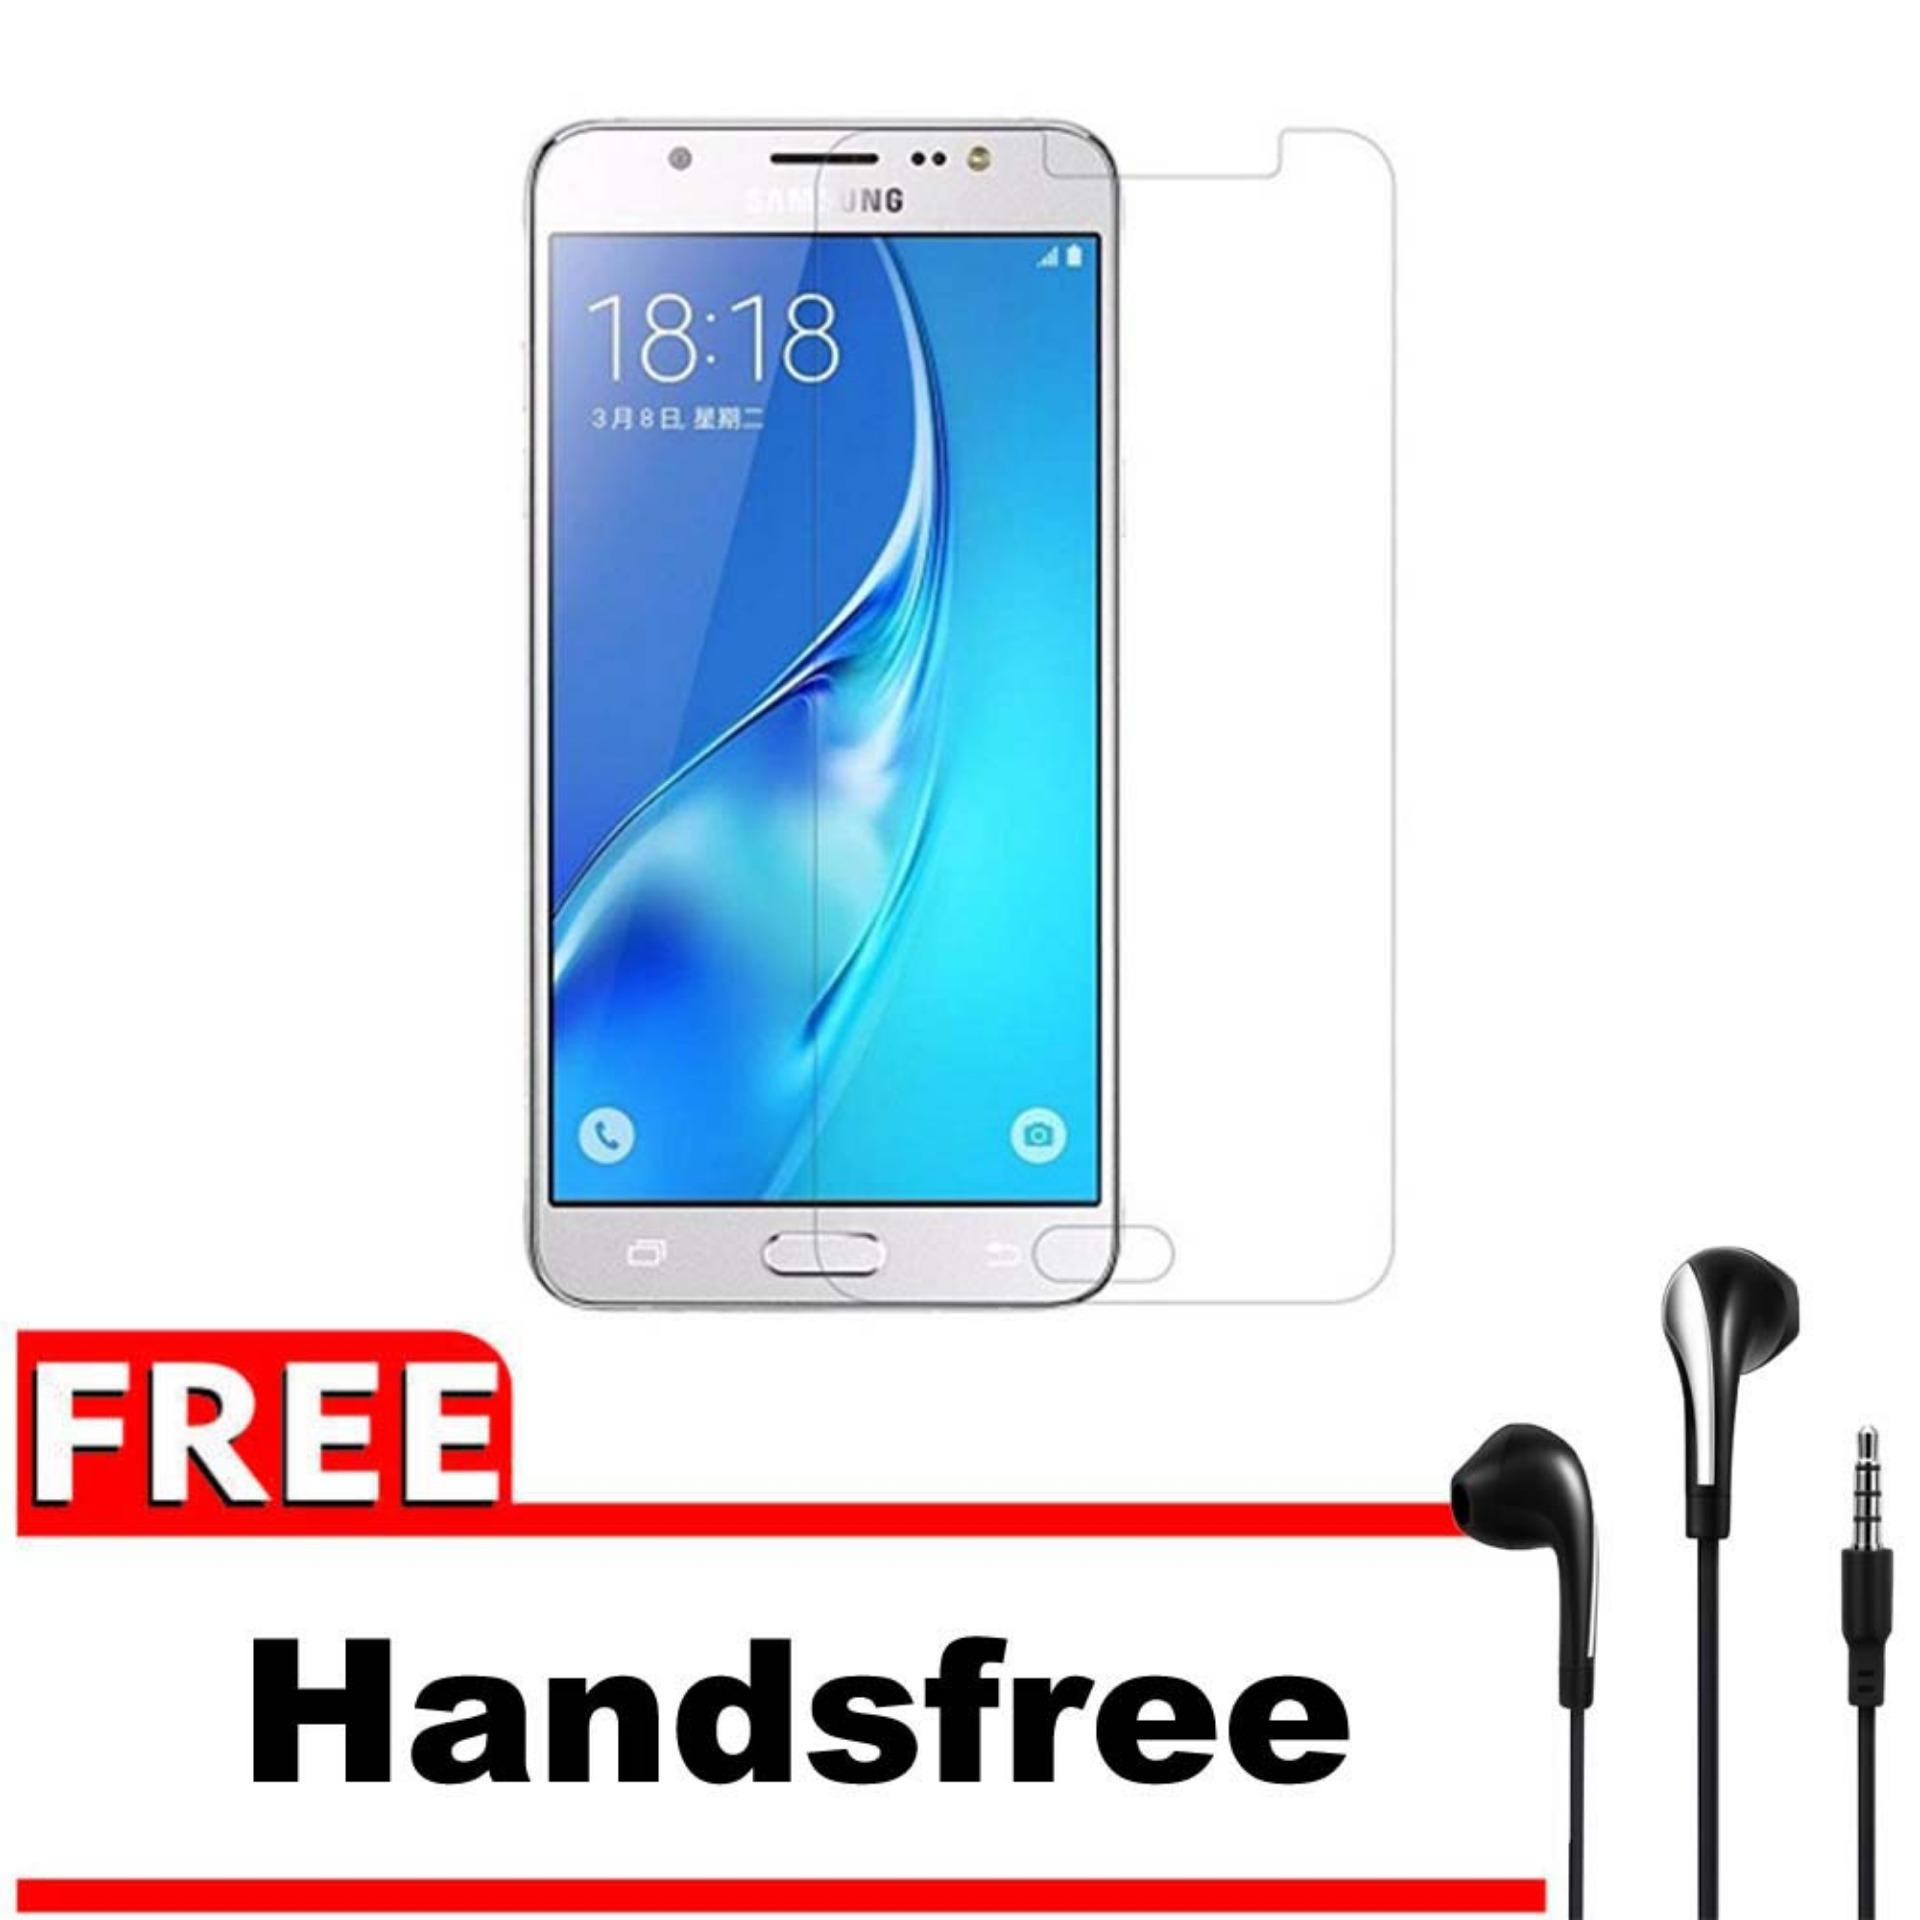 Vn Samsung Galaxy Grand Max / 4G LTE / Duos Tempered Glass 9H Screen Protector 0.32mm + Gratis Free Handsfree Earphone Headset Universal - Bening Transparan